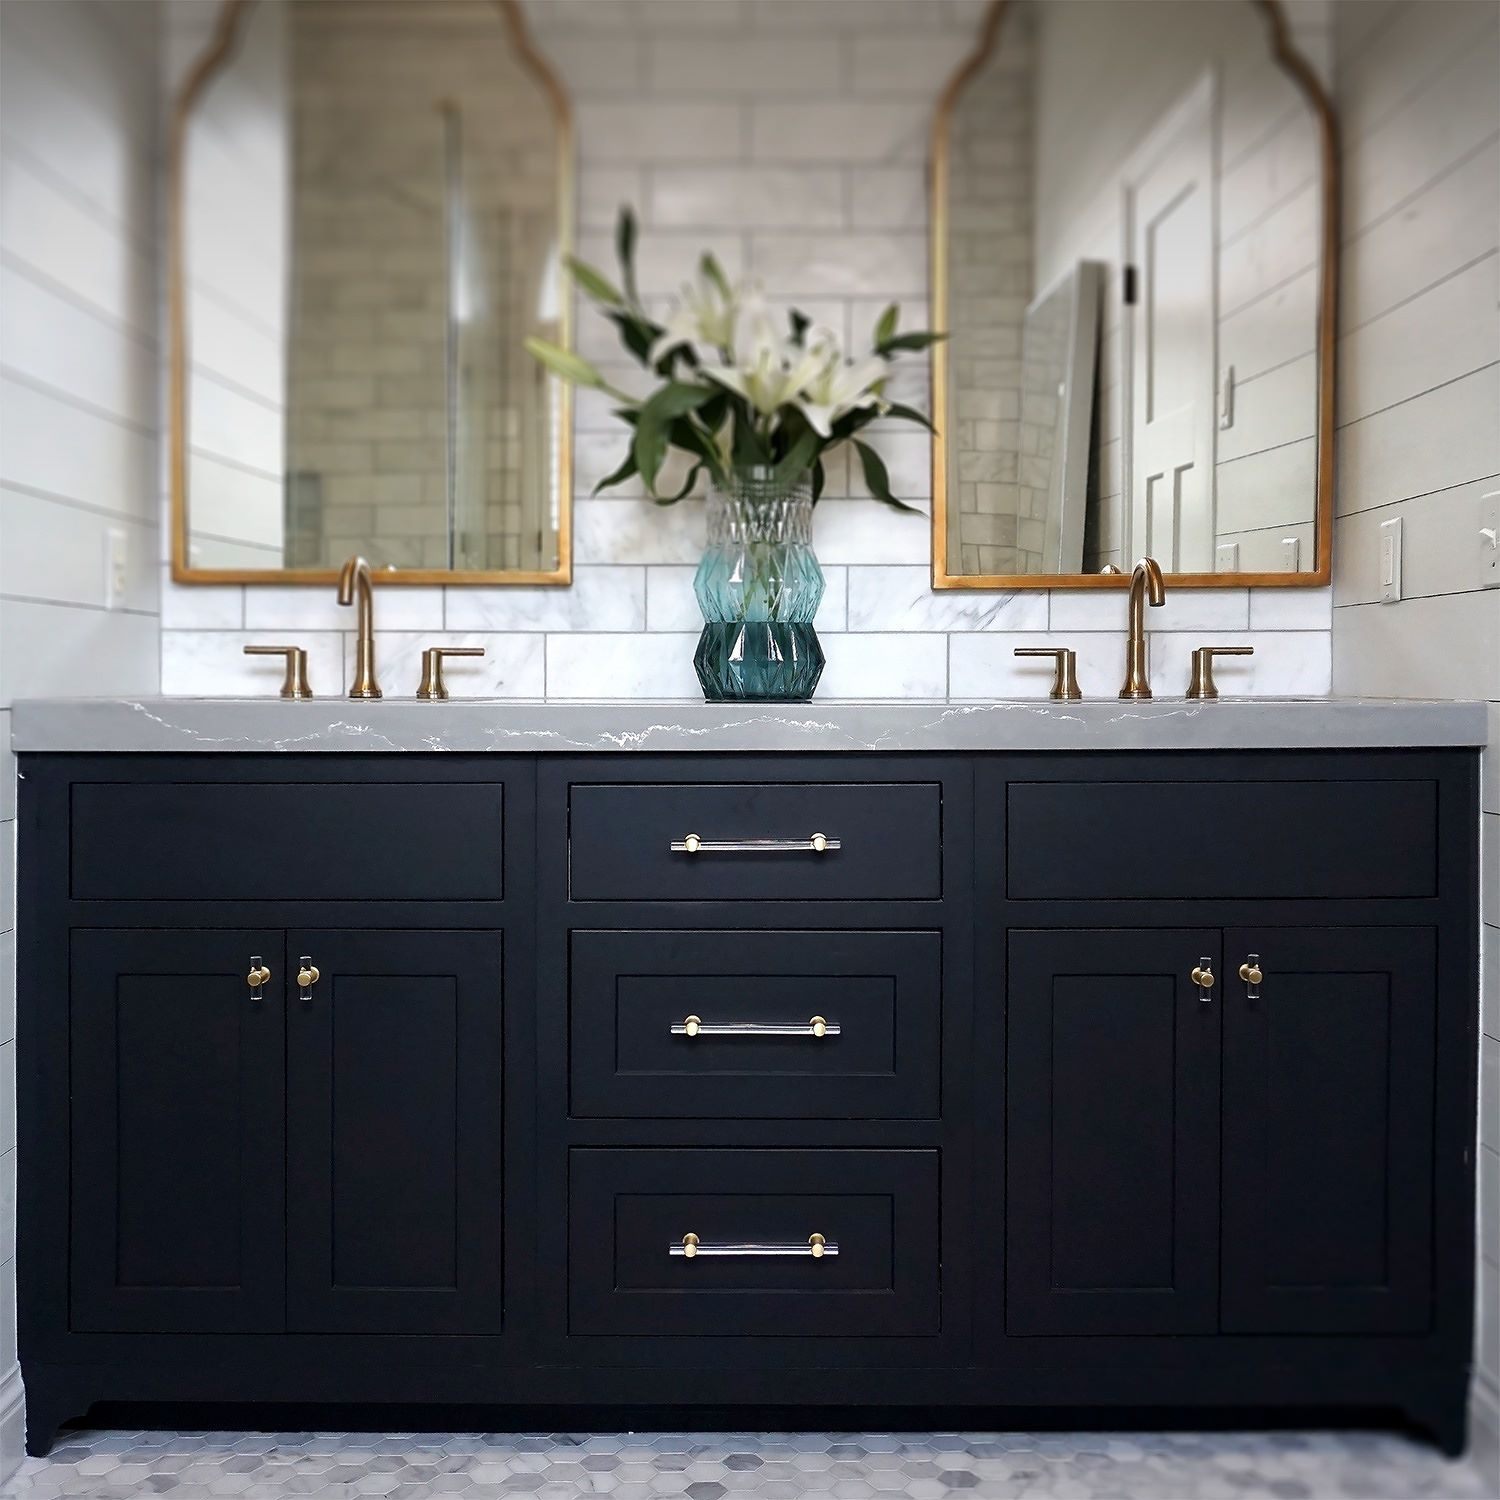 Its Easy To Be A Morning Person With A Bathroom Vanity Like This - Bathroom vanities austin